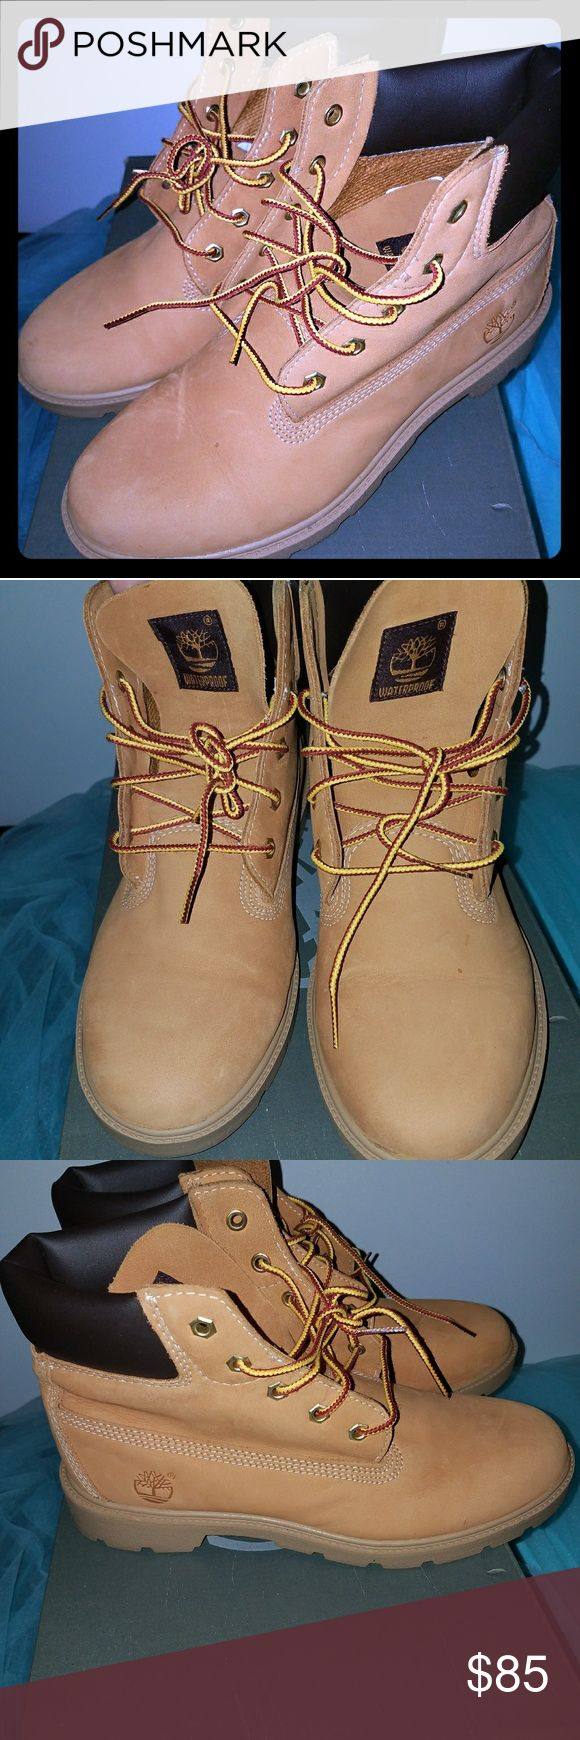 Junior Boys Timberland Boots Timberland Boots Junior Boys size 5.5.  Worn once.  Great condition. Timberland Shoes Lace Up Boots